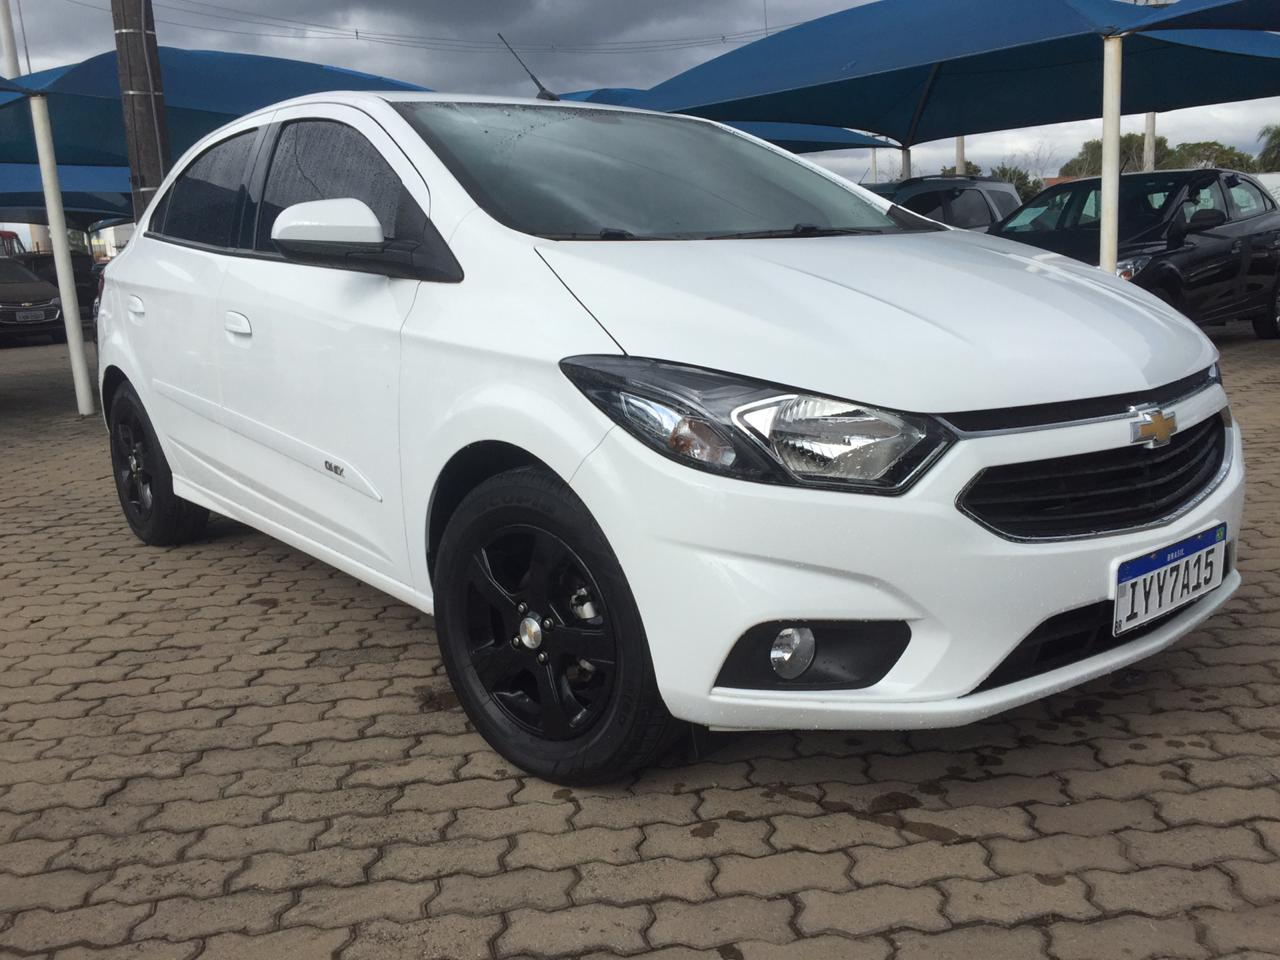 CHEVROLET ONIX HATCH LTZ 1.4 2019